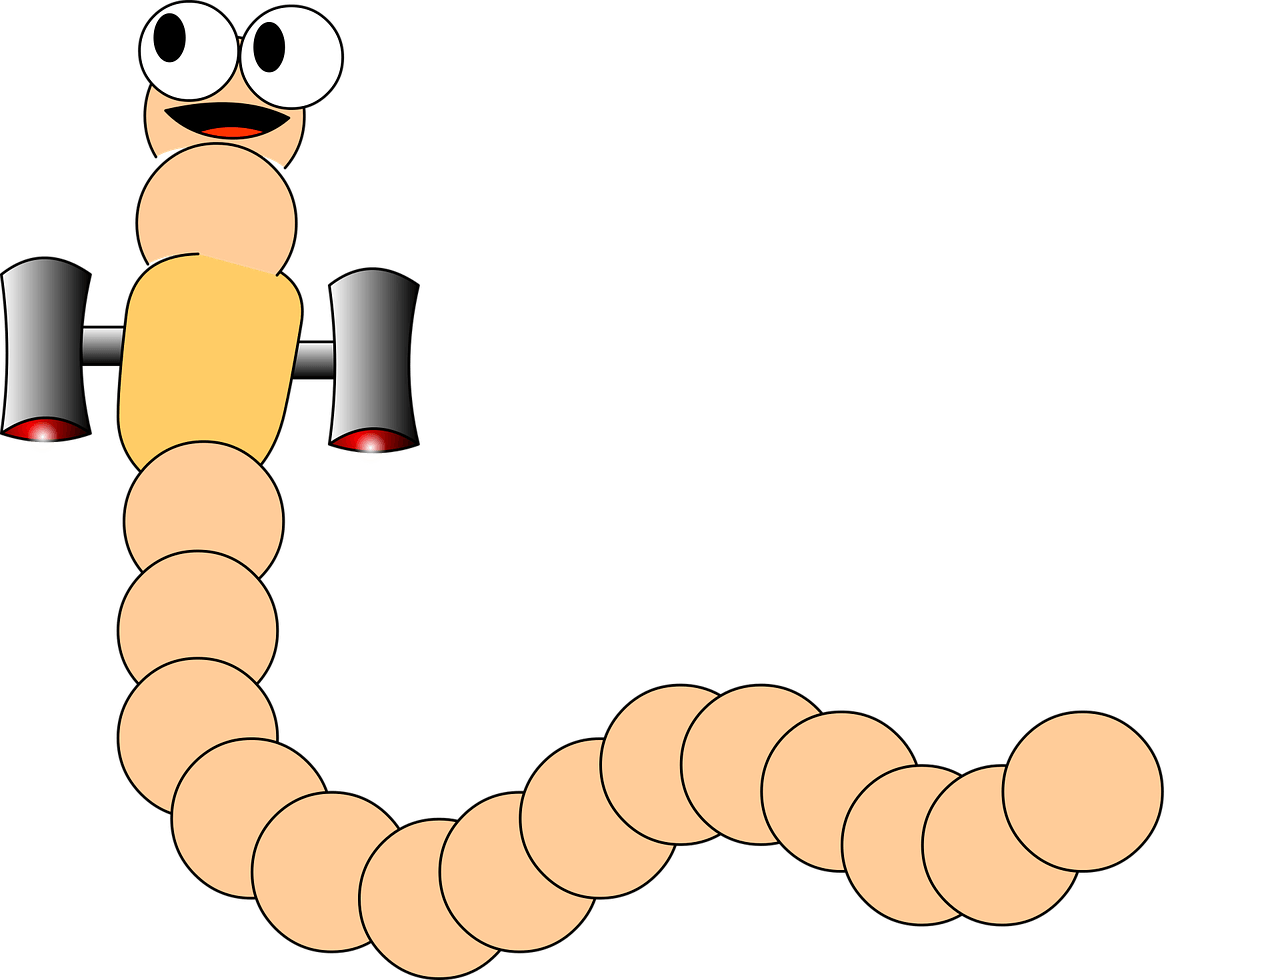 Can Worms Really Process Plastic?